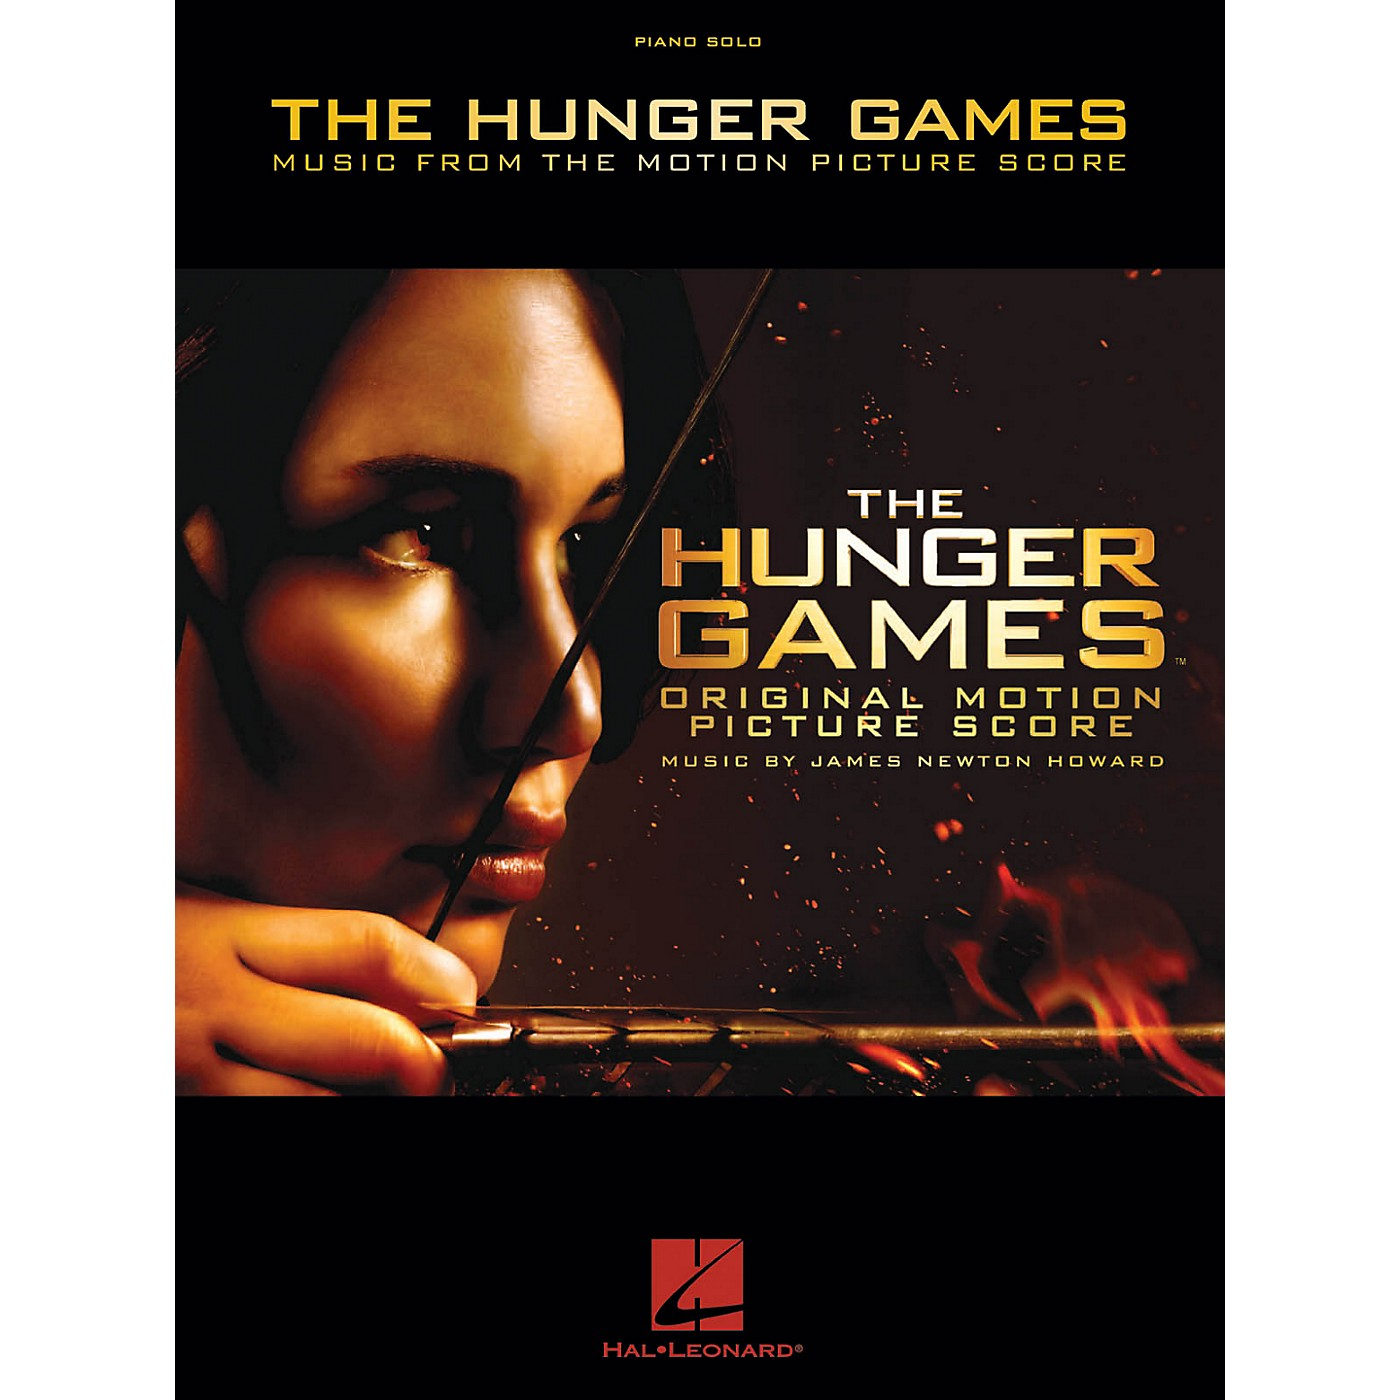 Hal Leonard The Hunger Games - Music From The Motion Picture Score Piano Solo Songbook thumbnail